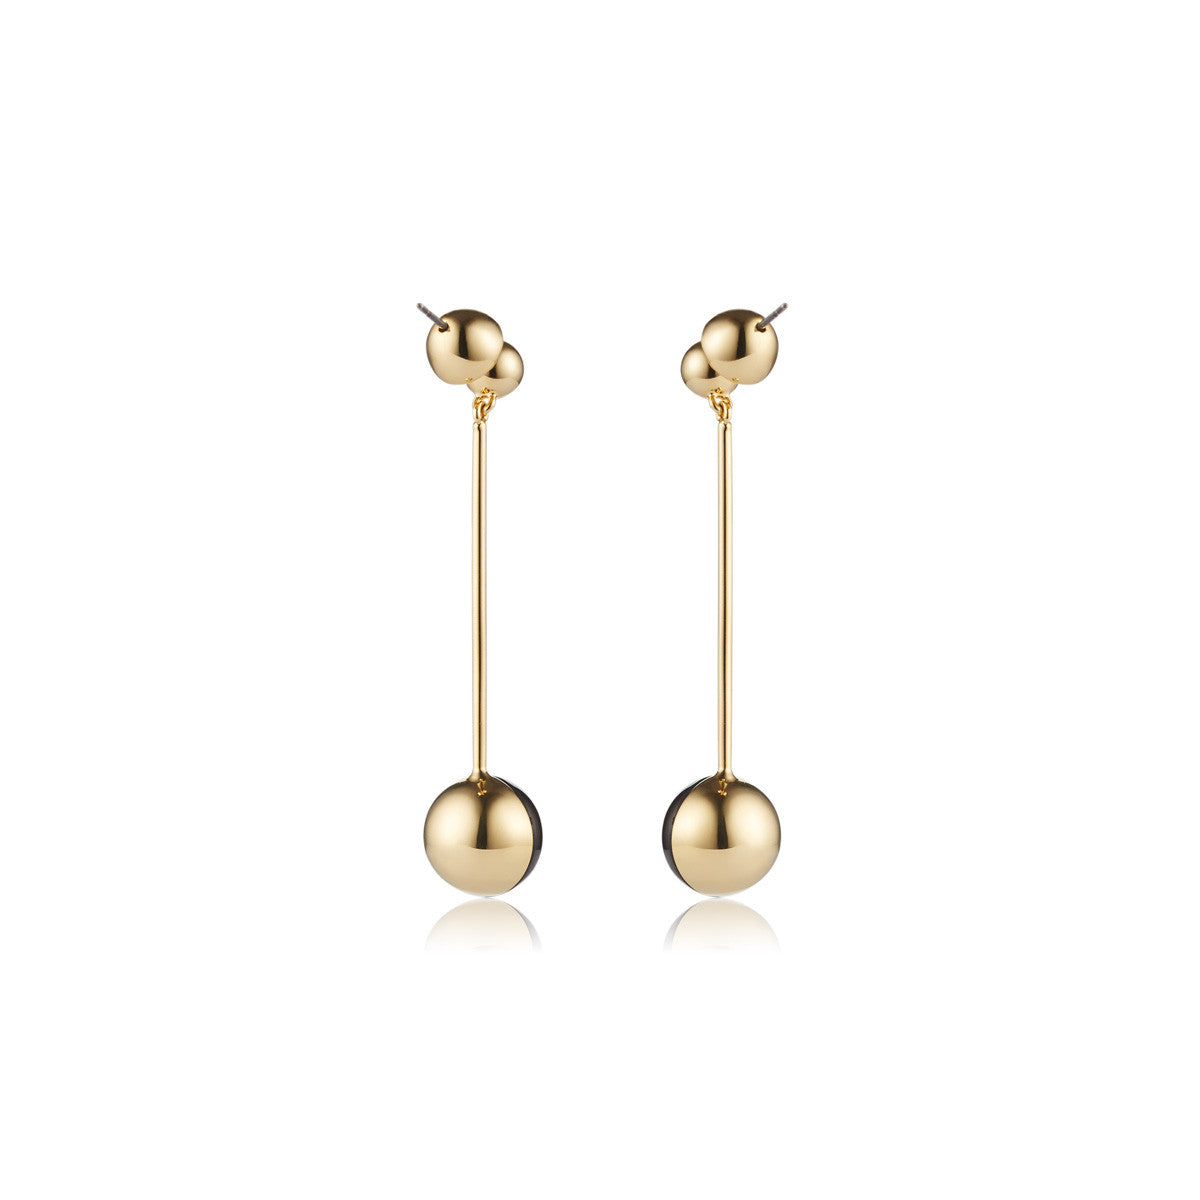 Solid brass, 18K gold plated Luna earrings set with hand cut black onyx – back